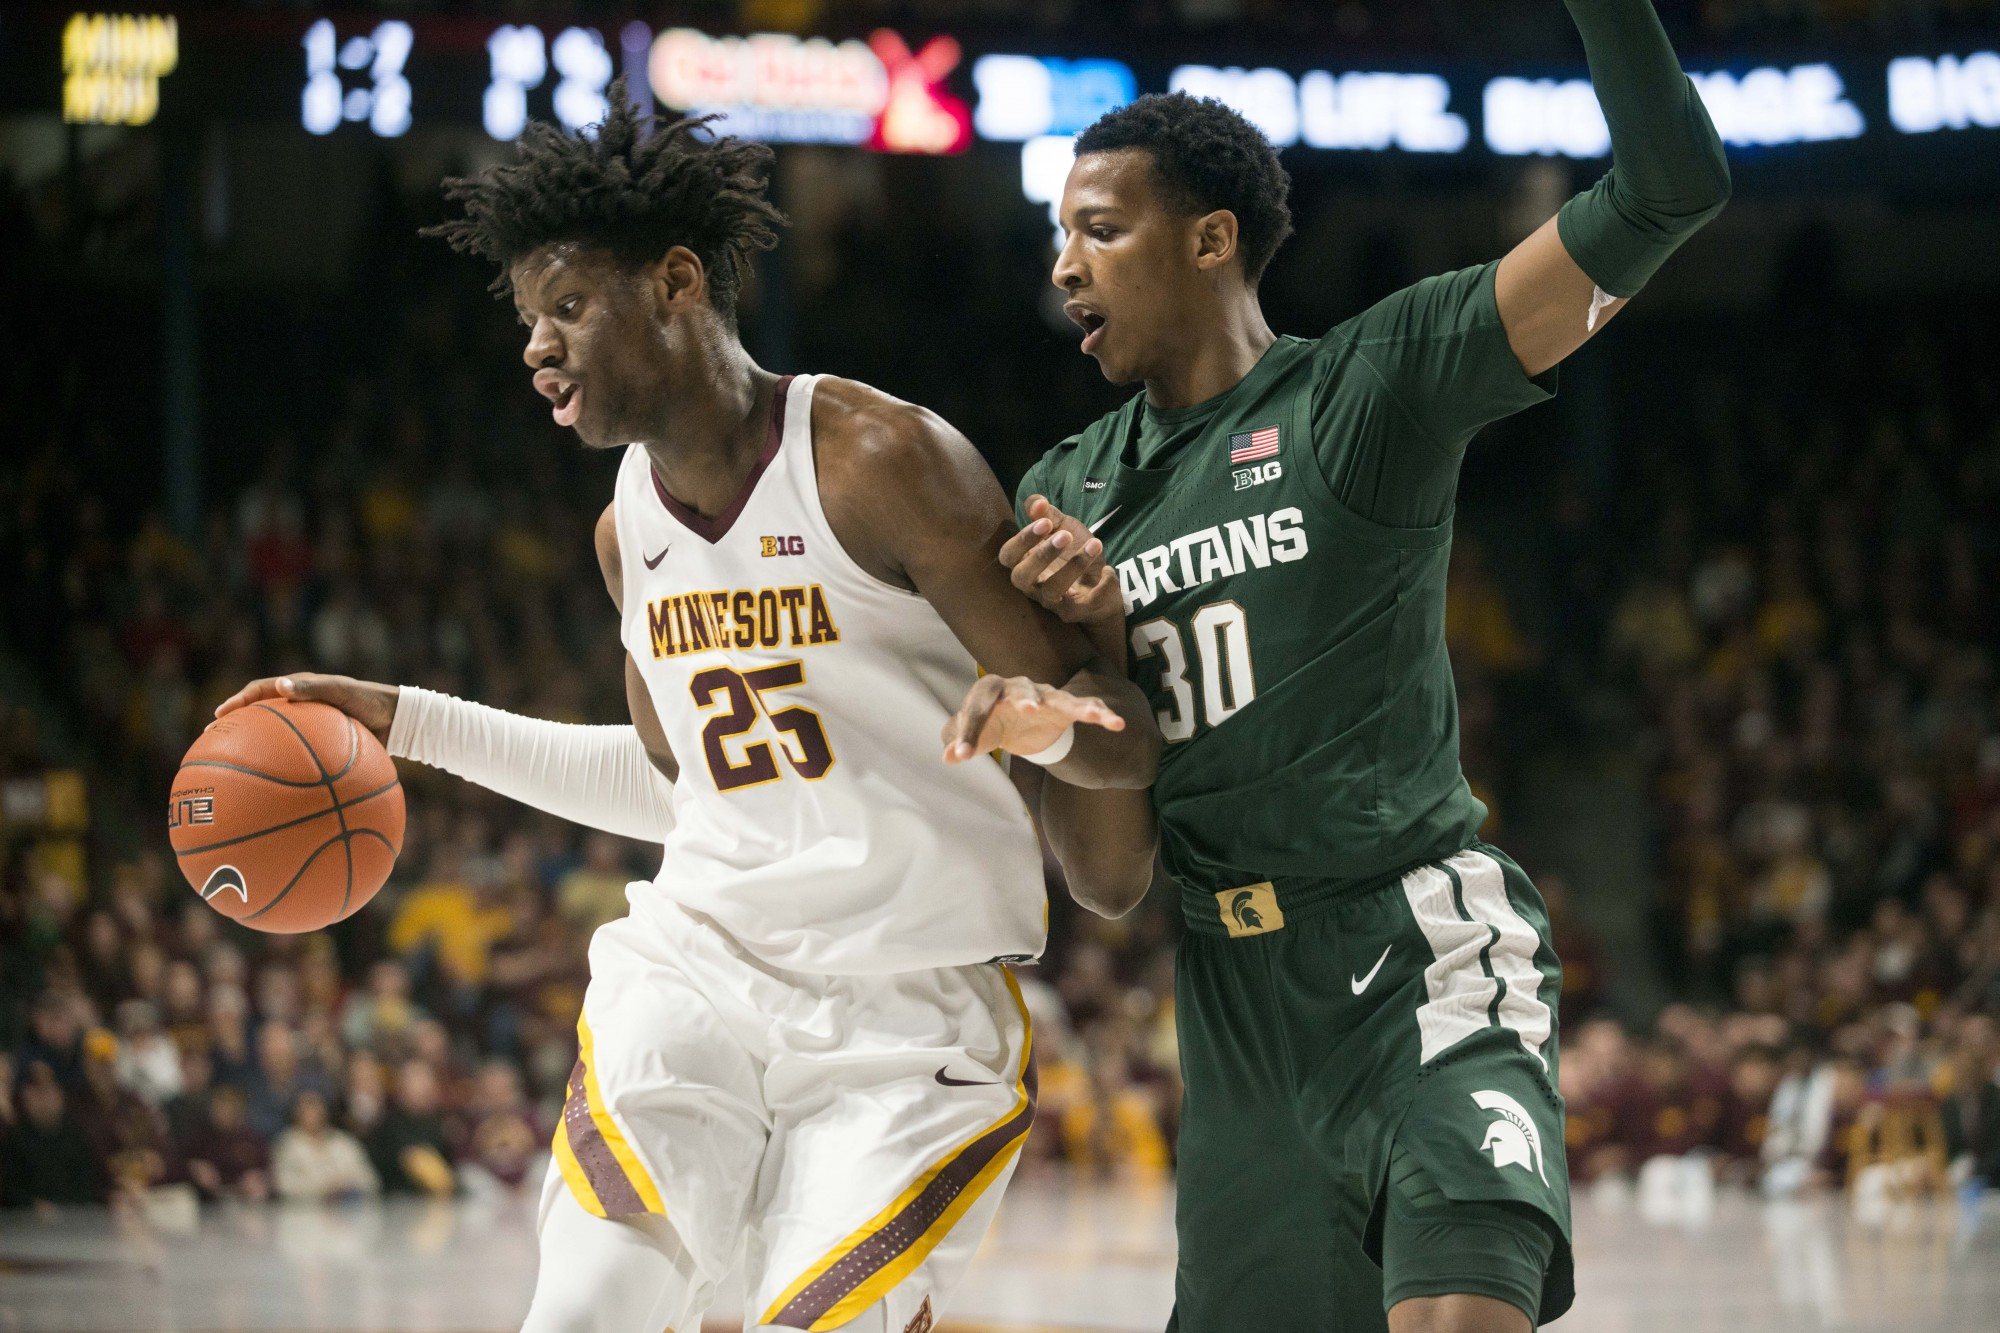 Center Daniel Oturu drives the ball through a defender at Williams Arena on Sunday, Jan. 26. The Gophers lost to the Michigan State Spartans 70-52.